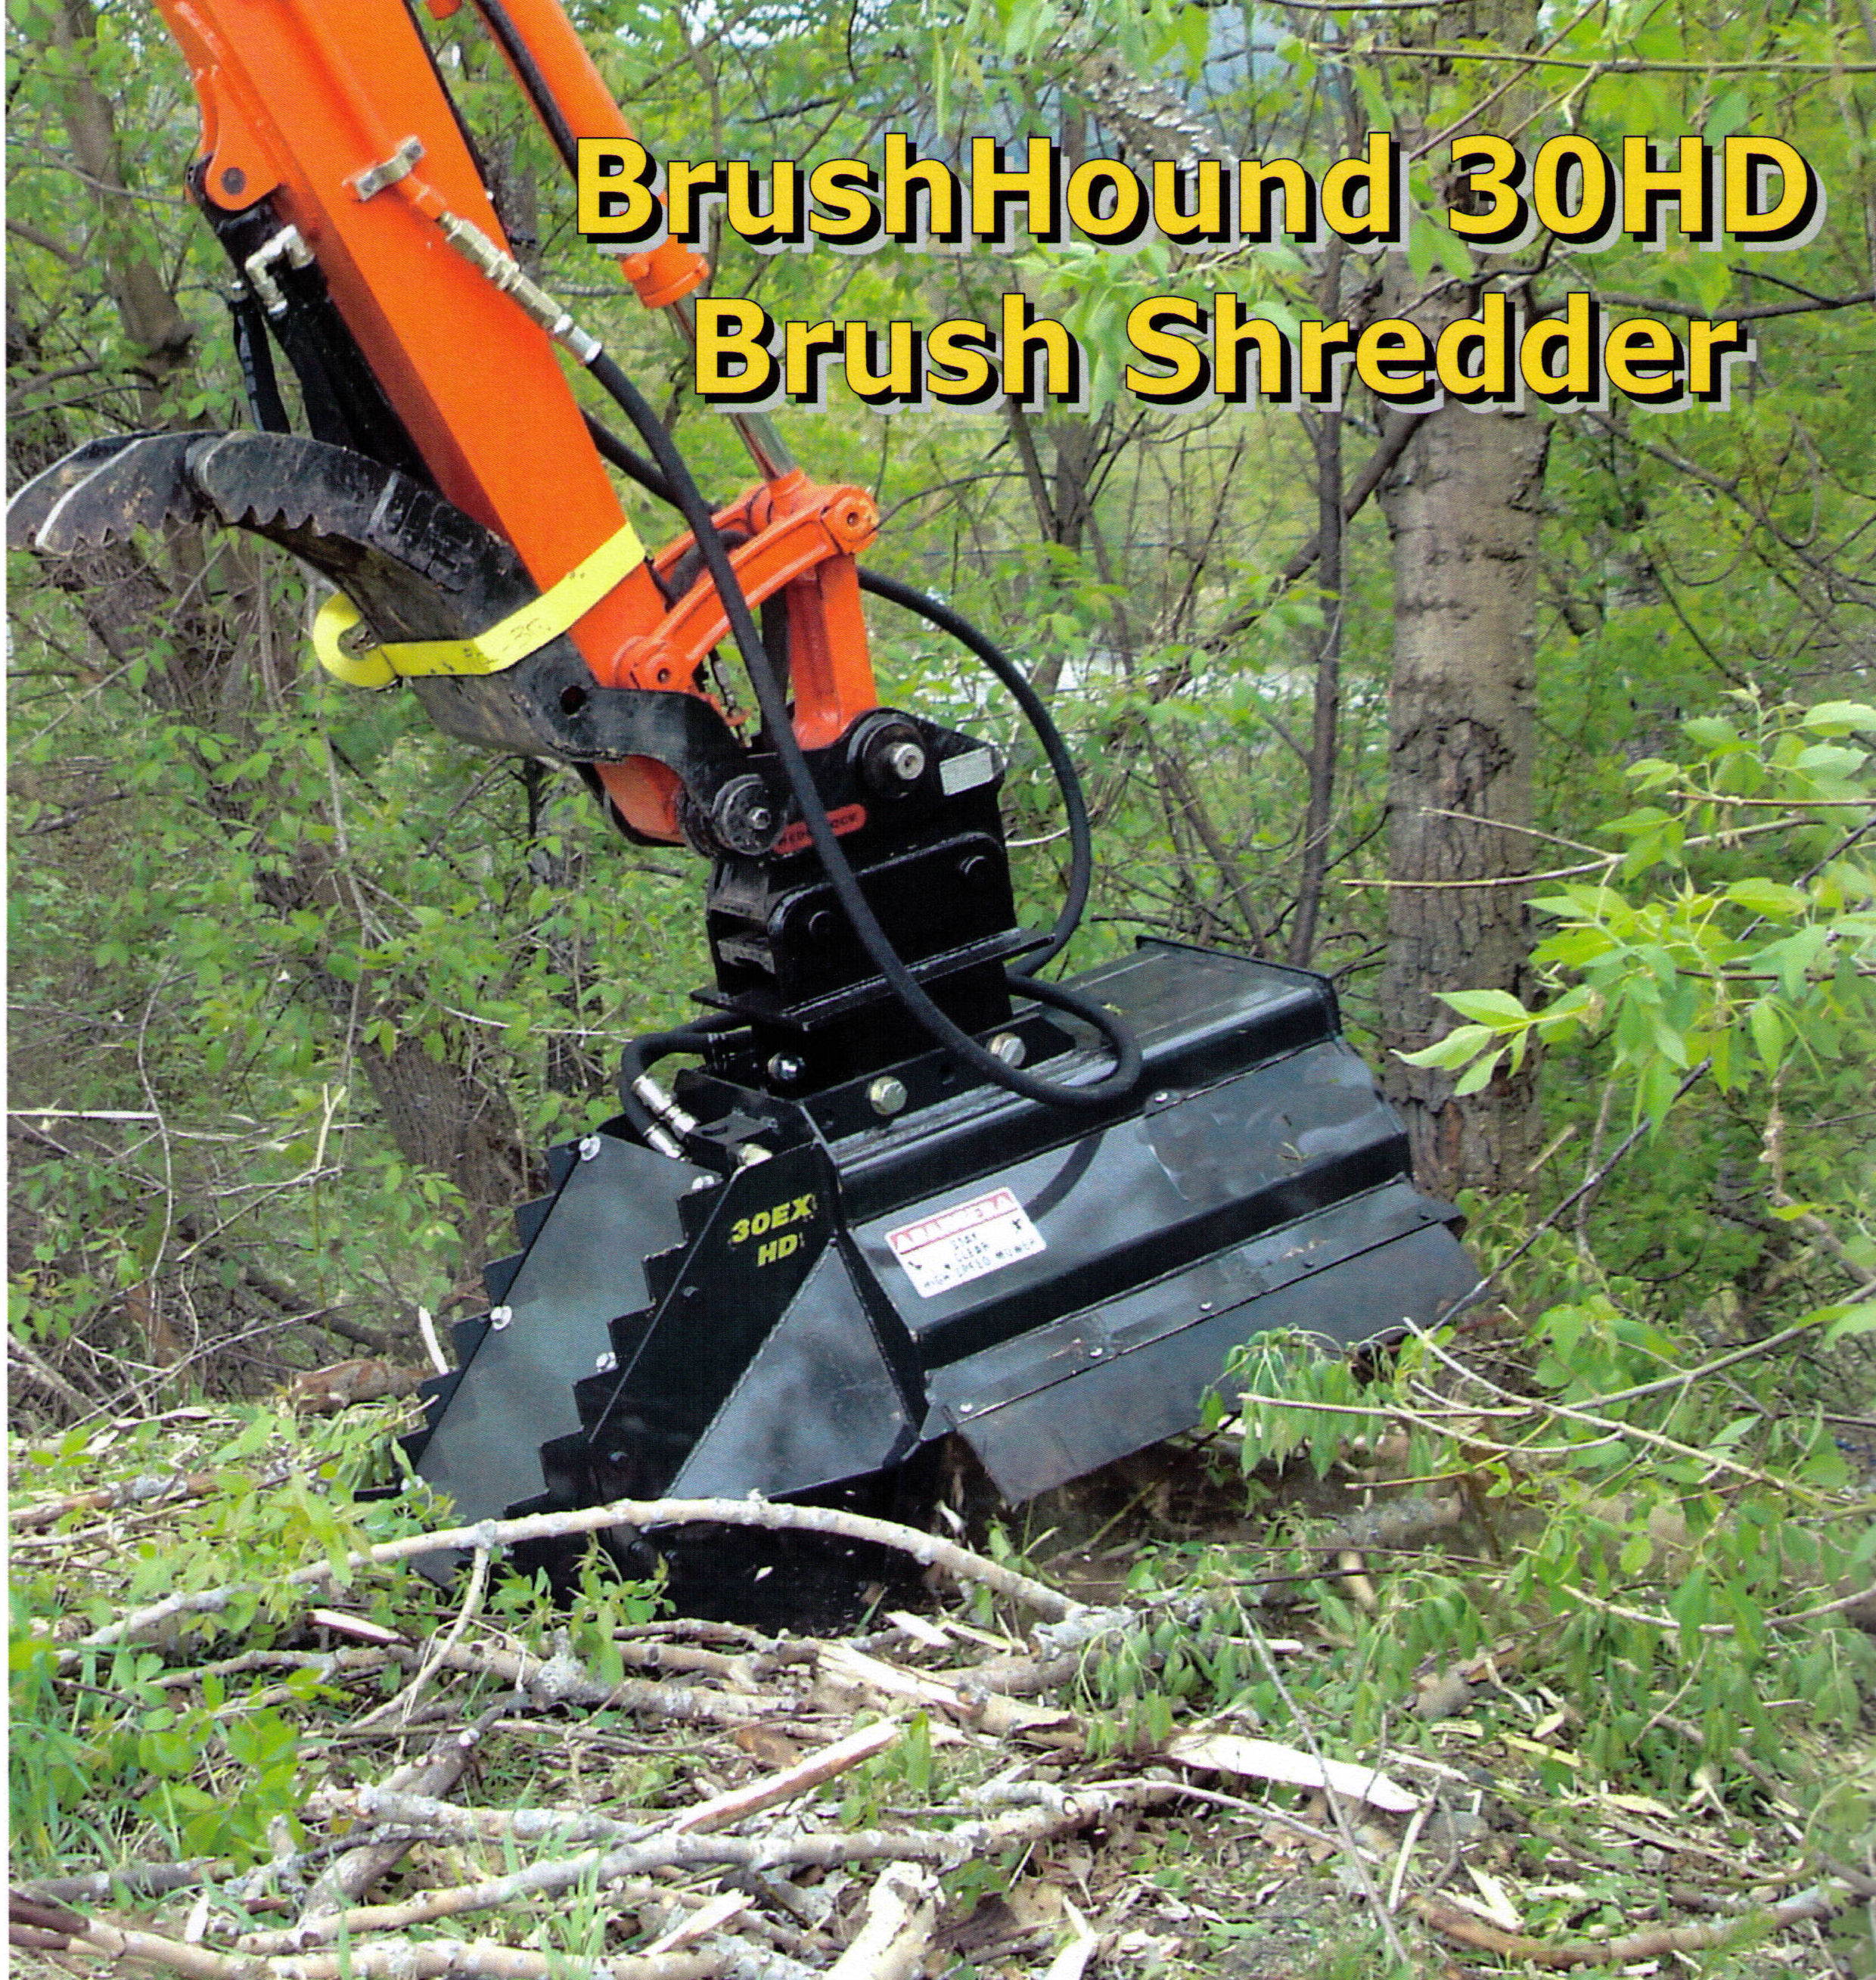 Model 30EXHD Brush Shredder For Excavators 5 Tons And Larger In Weight